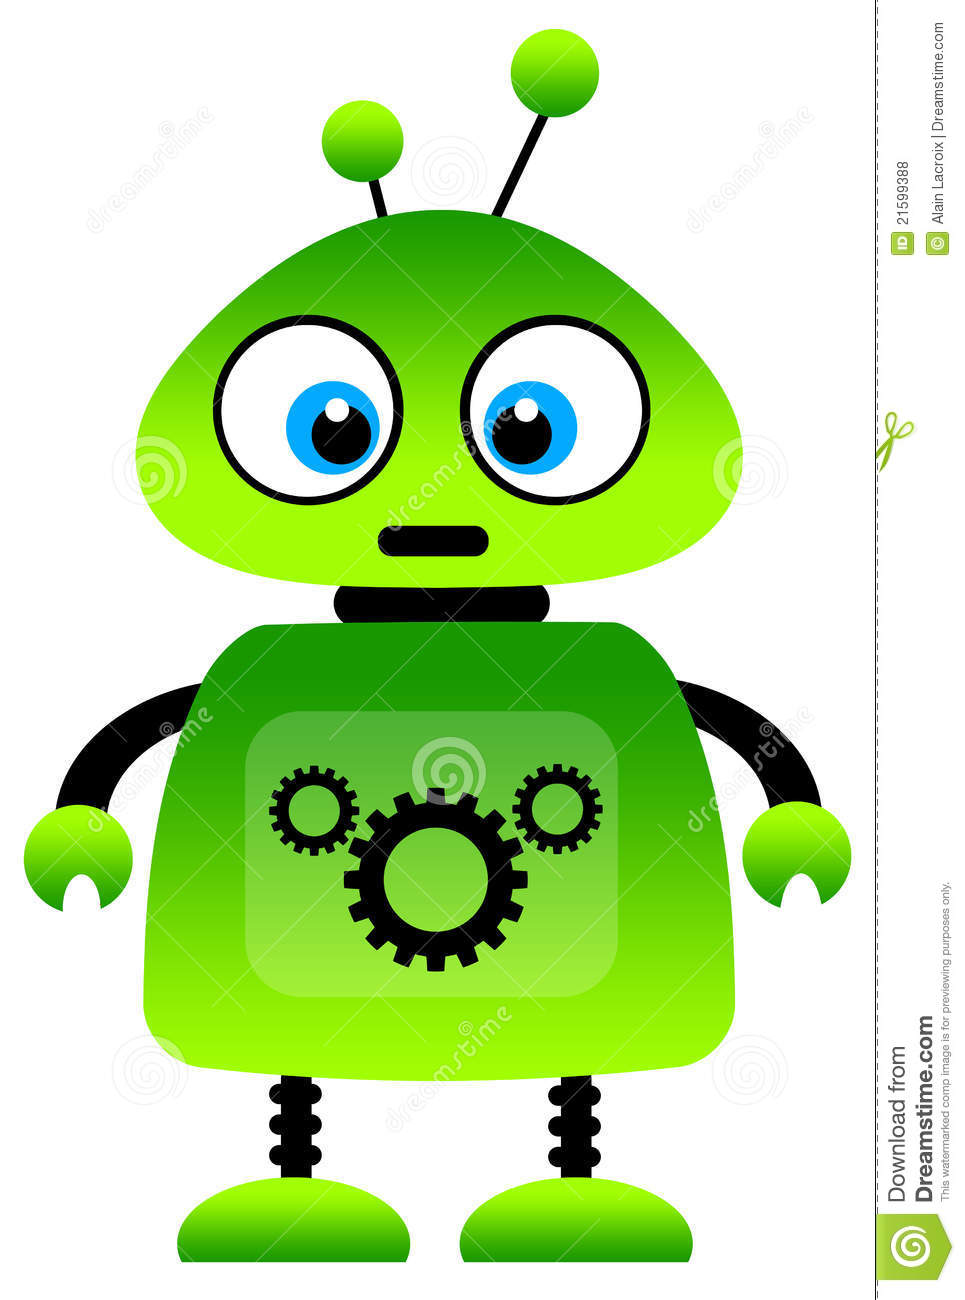 Green Robot Royalty Free Stock Photos - Image: 21599388